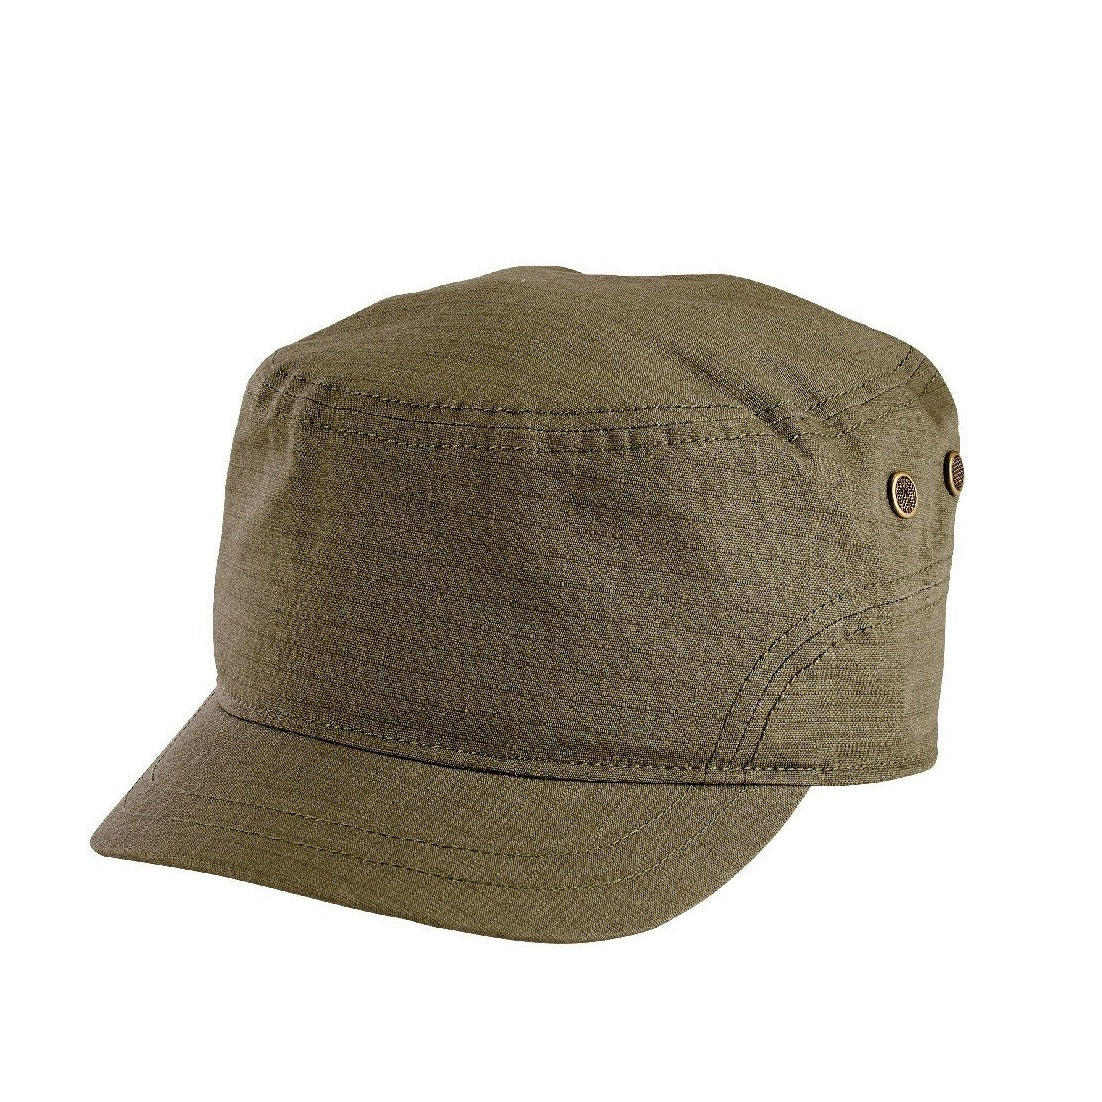 Unisex Textured Cotton Military Cap (CTH8061) - San Diego Hat Company 14d5a46ffbb